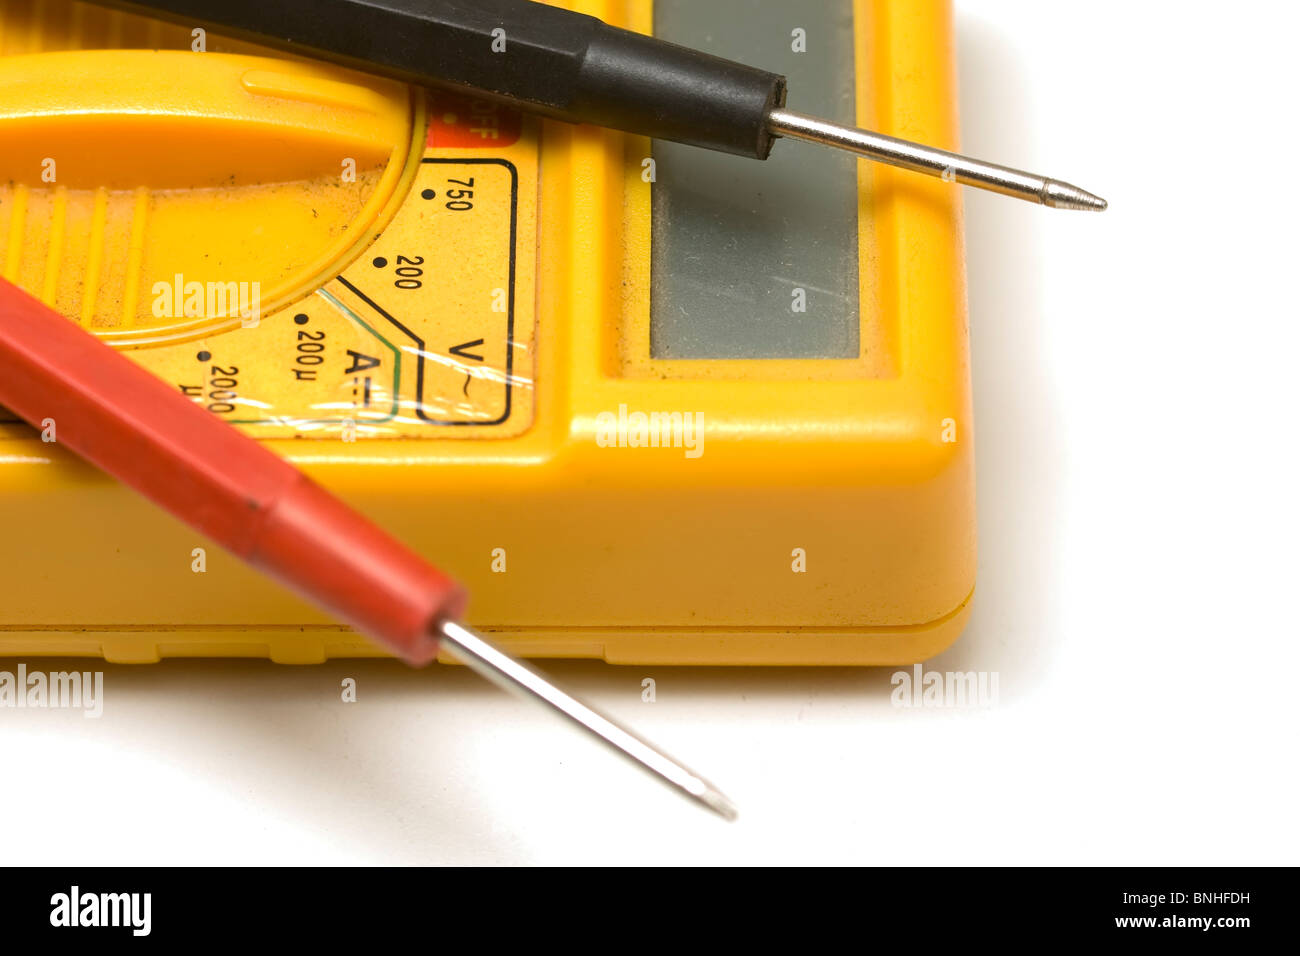 Yellow multimeter with testing needles - Stock Image